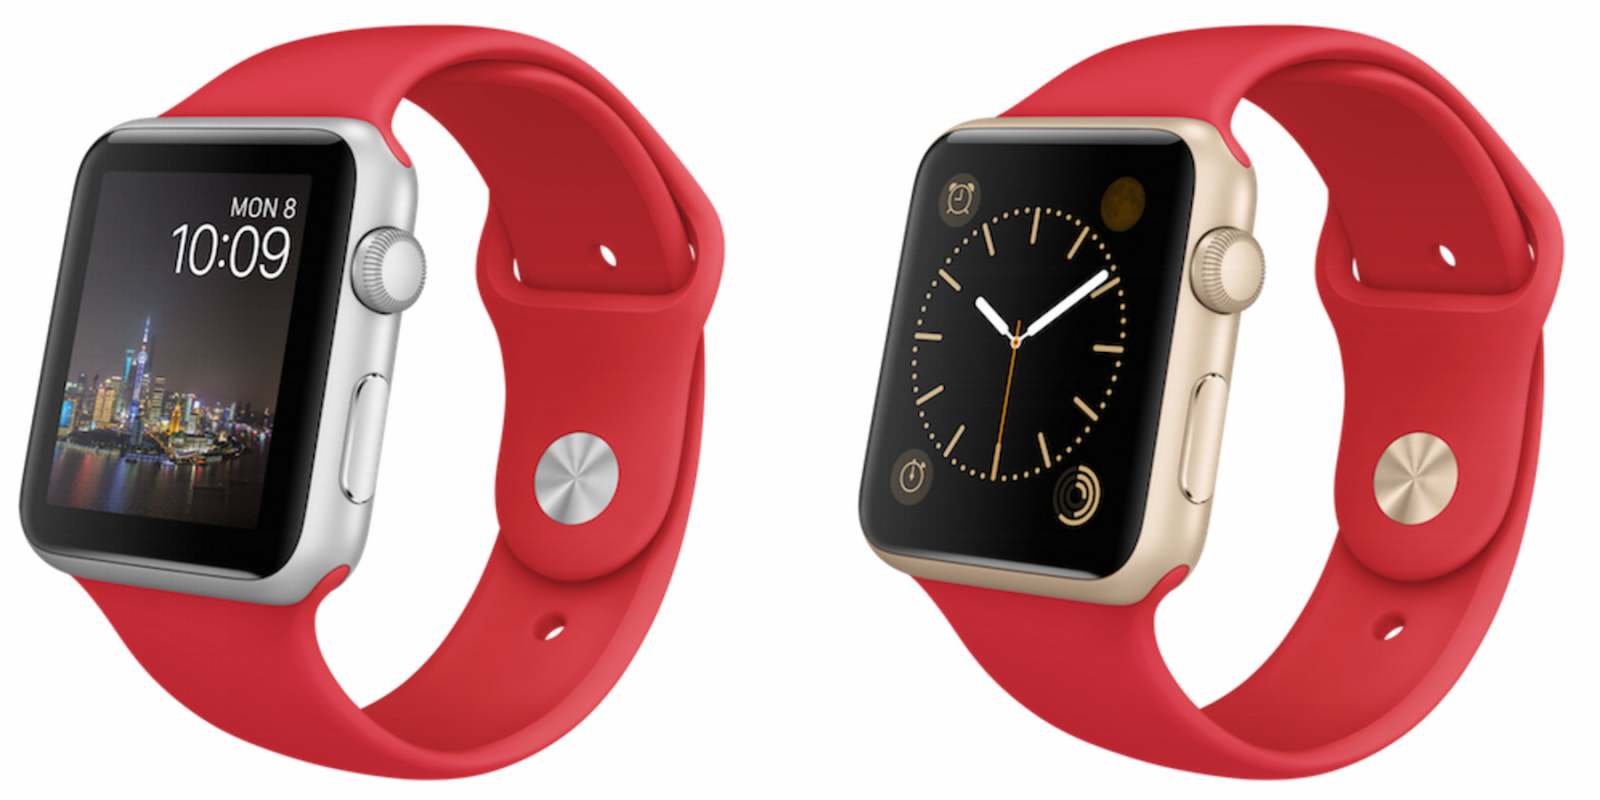 Apple accidentally reveals exclusive Apple Watch Sport